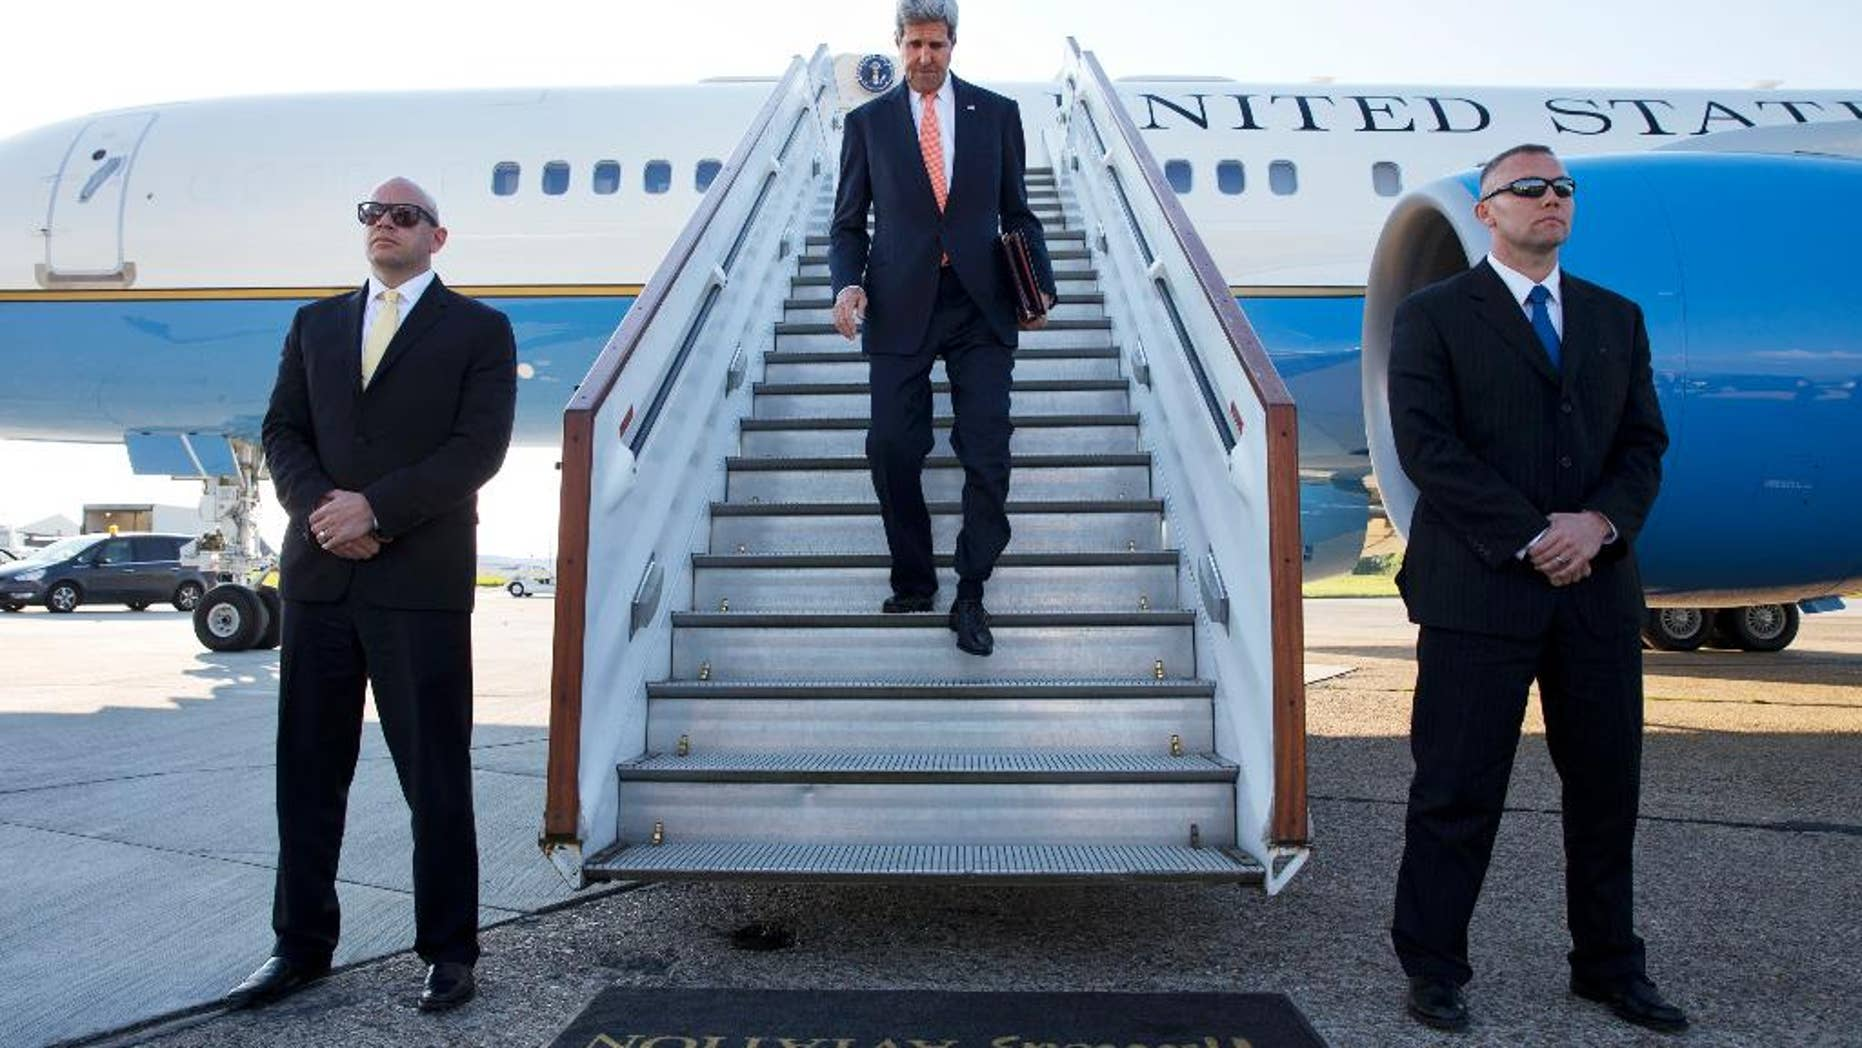 U.S. Secretary of State John Kerry arrives at Stansted Airport outside of London, where he is expected to attend meetings on Syria with the London 11, Wednesday, May 14, 2014. (AP Photo/Jacquelyn Martin, Pool)